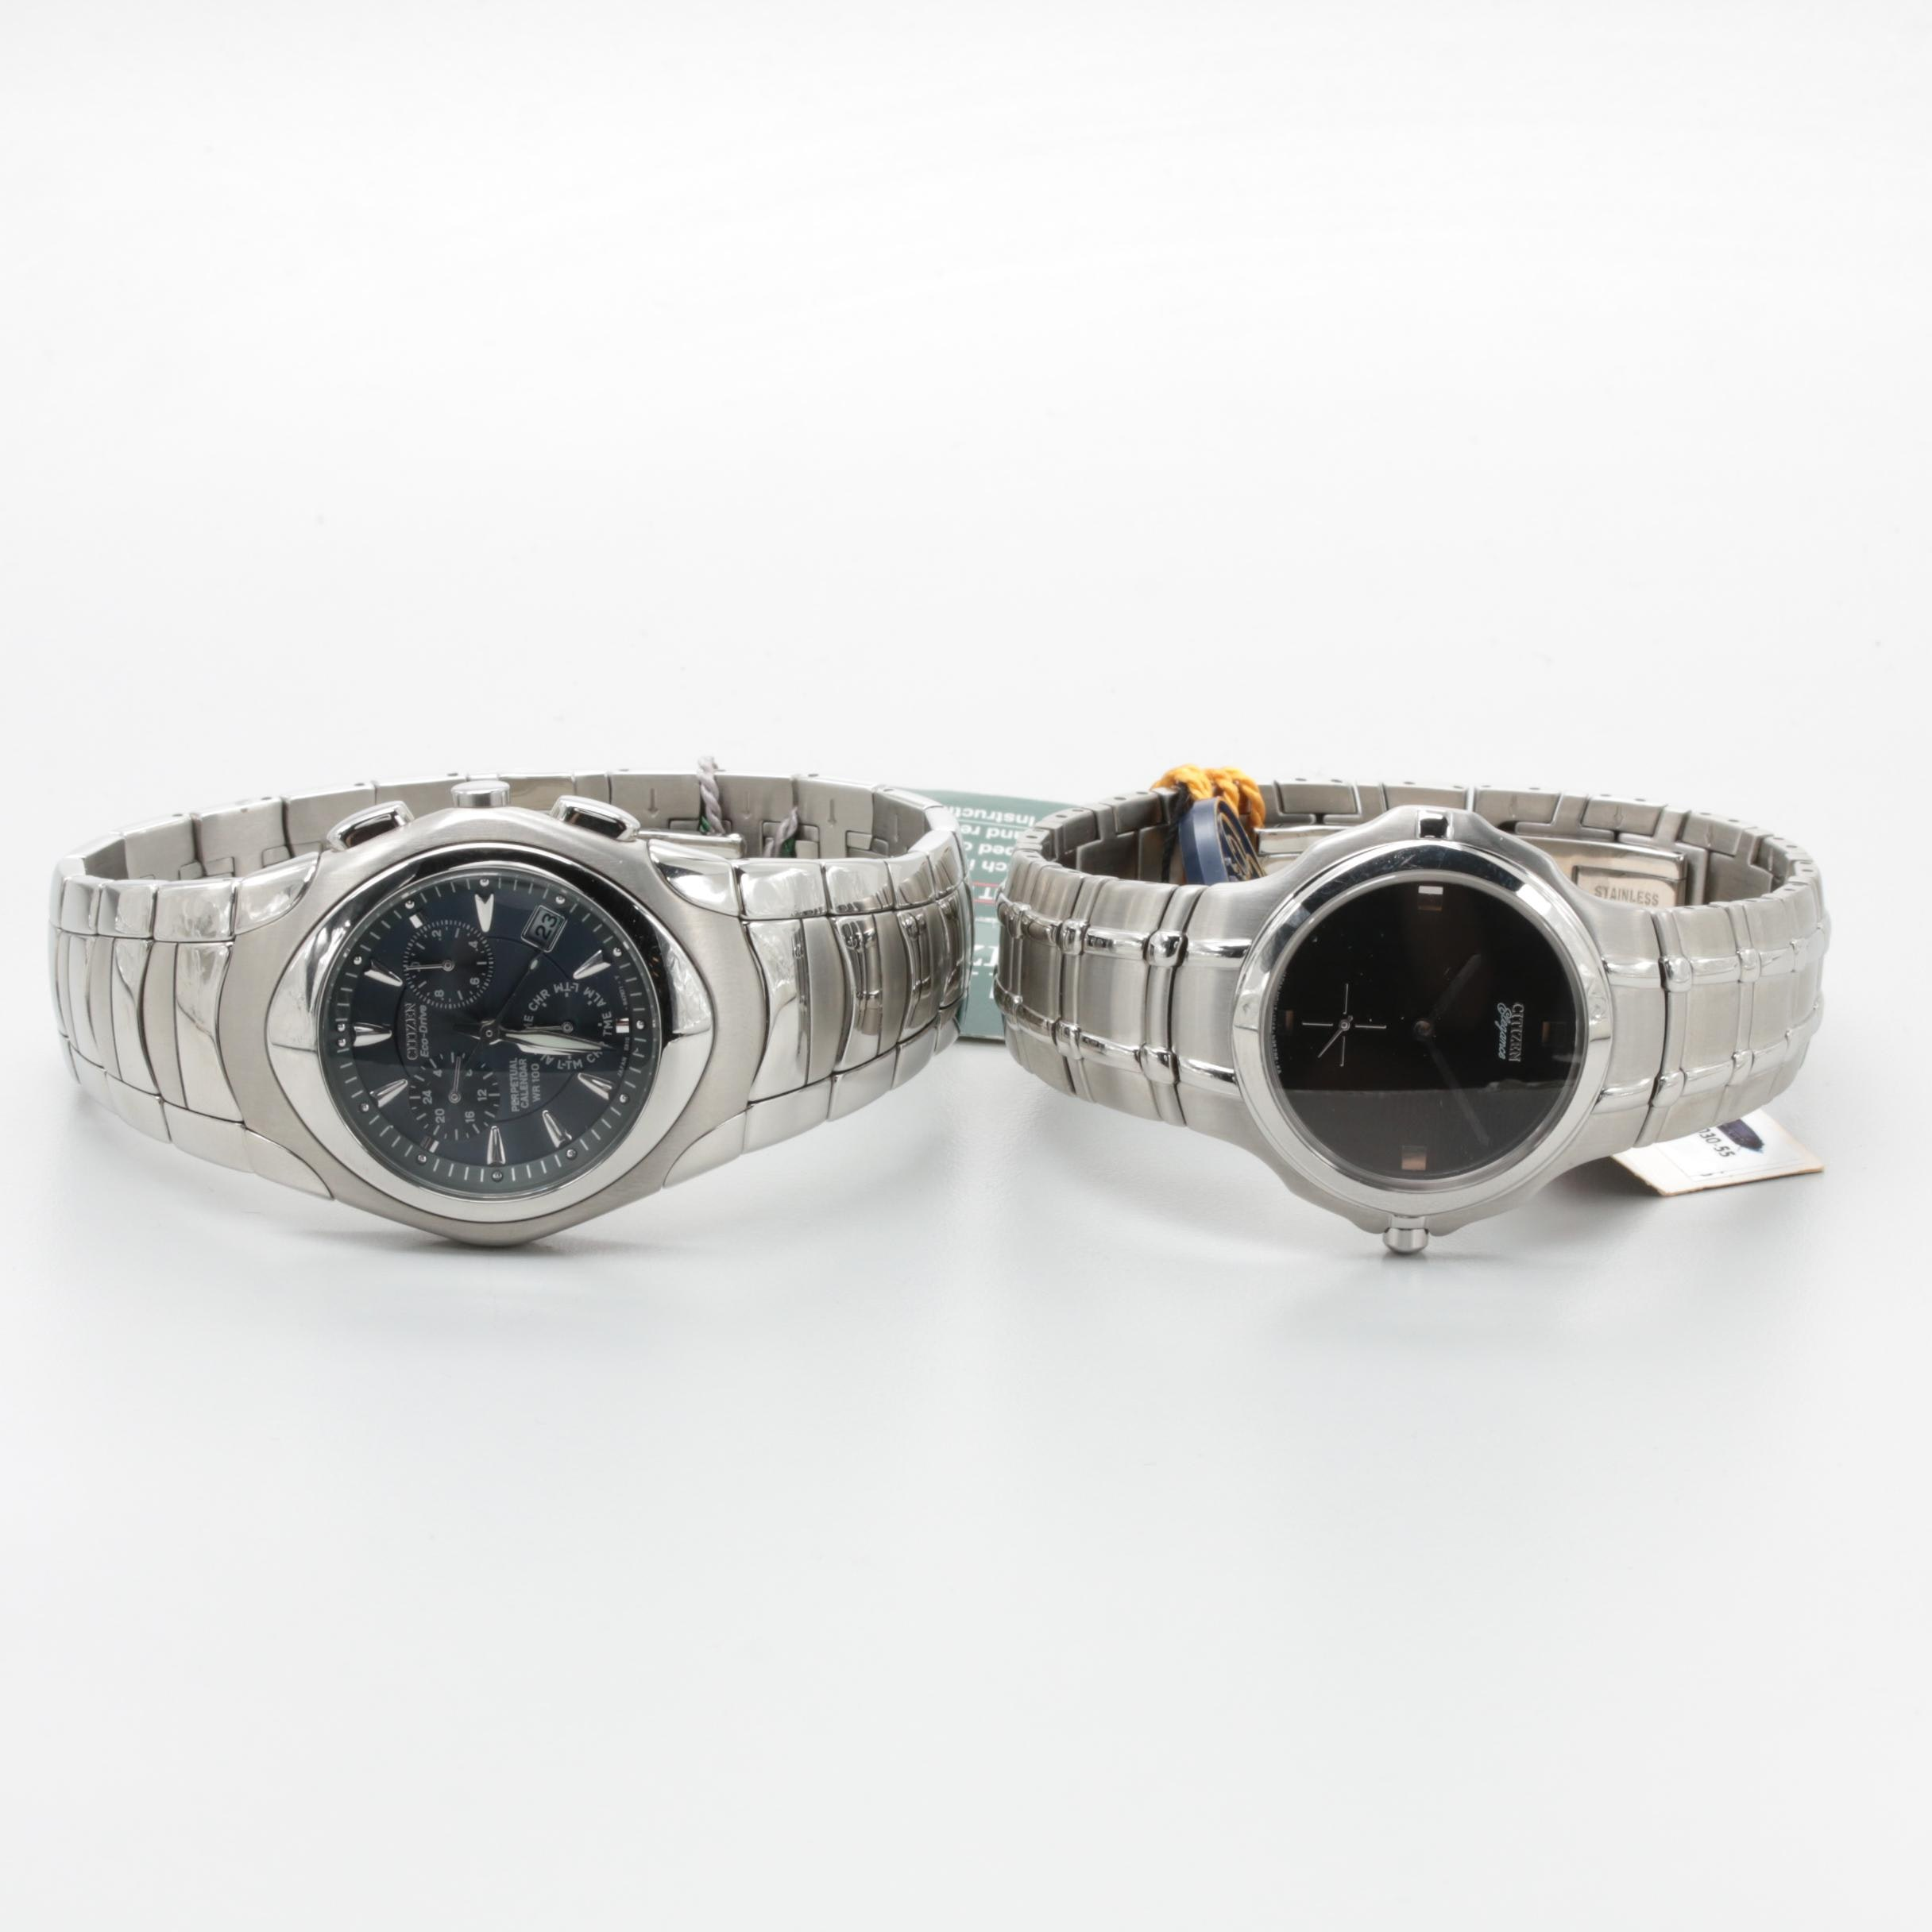 Citizen Eco-Drive and Elegance Stainless Steel Wristwatch Selection